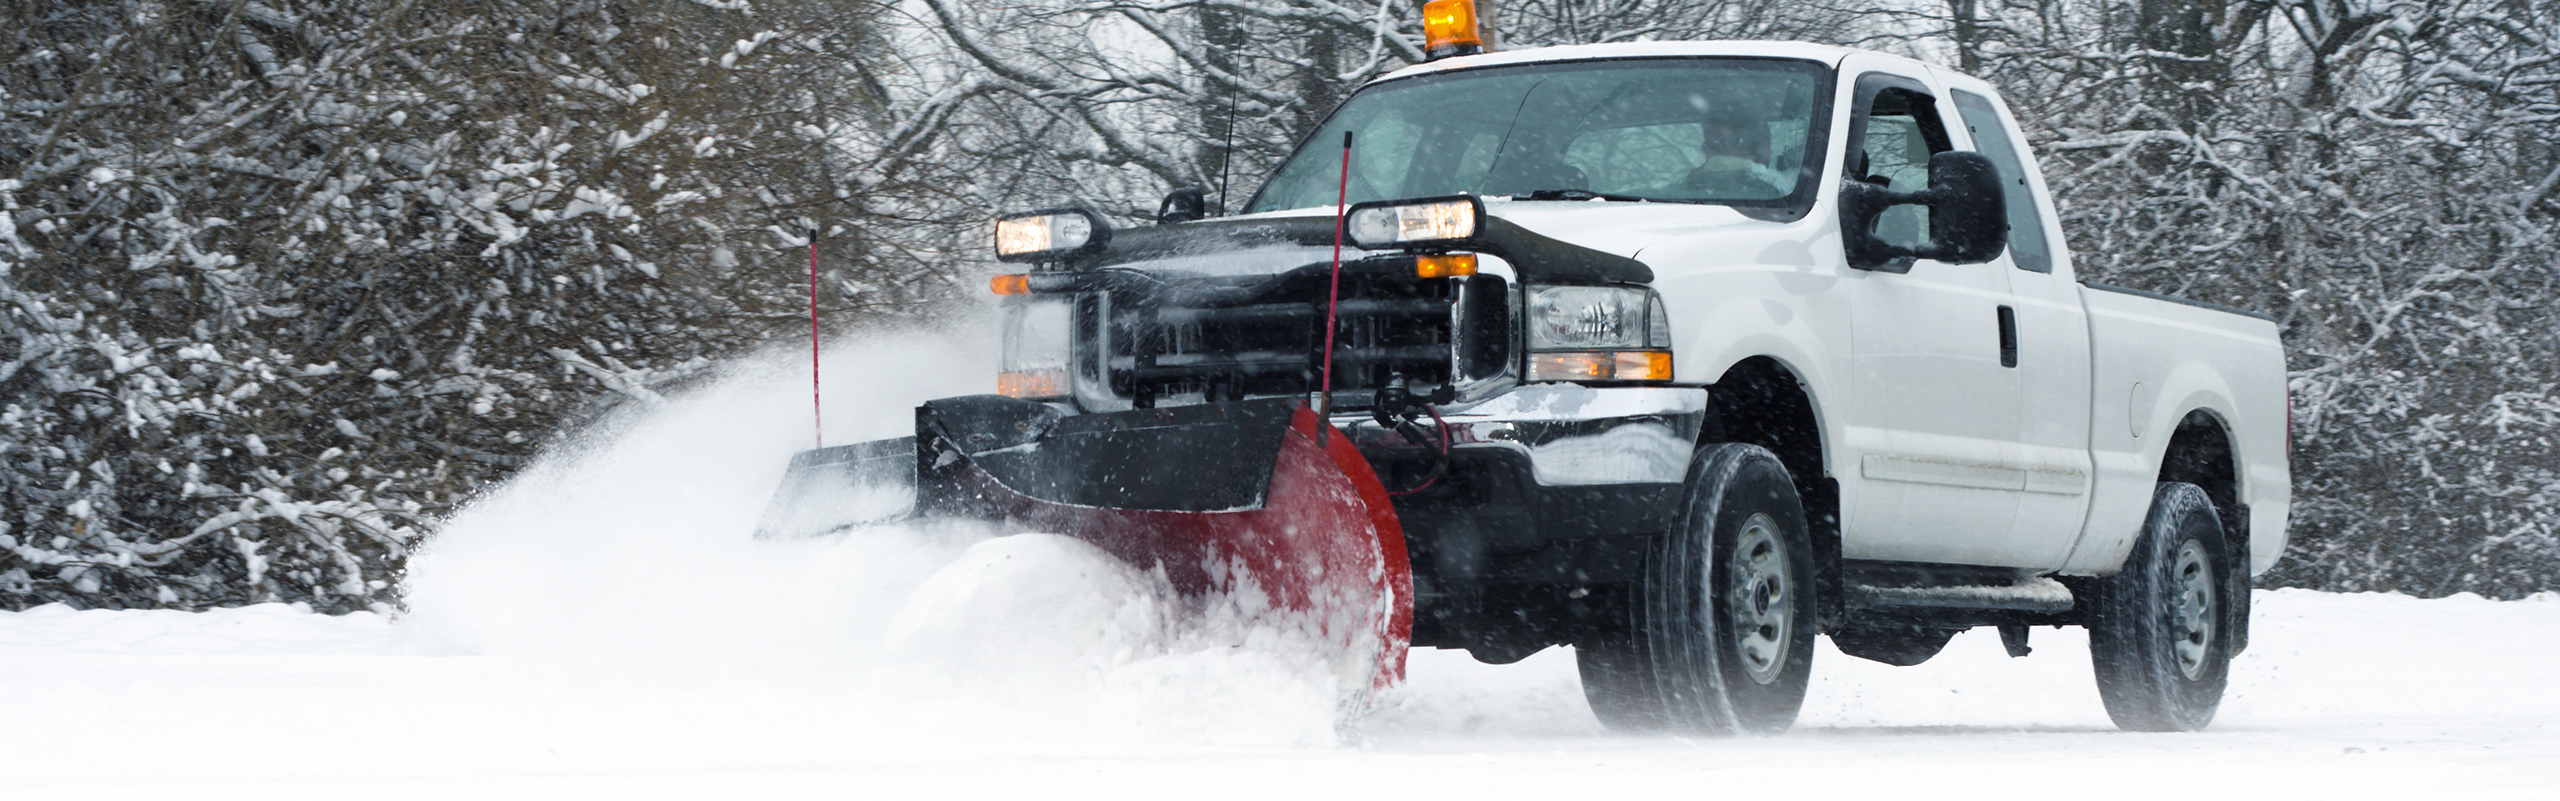 Snow Pushers Chicago — Examples (Snow Removal — Snow Plow)